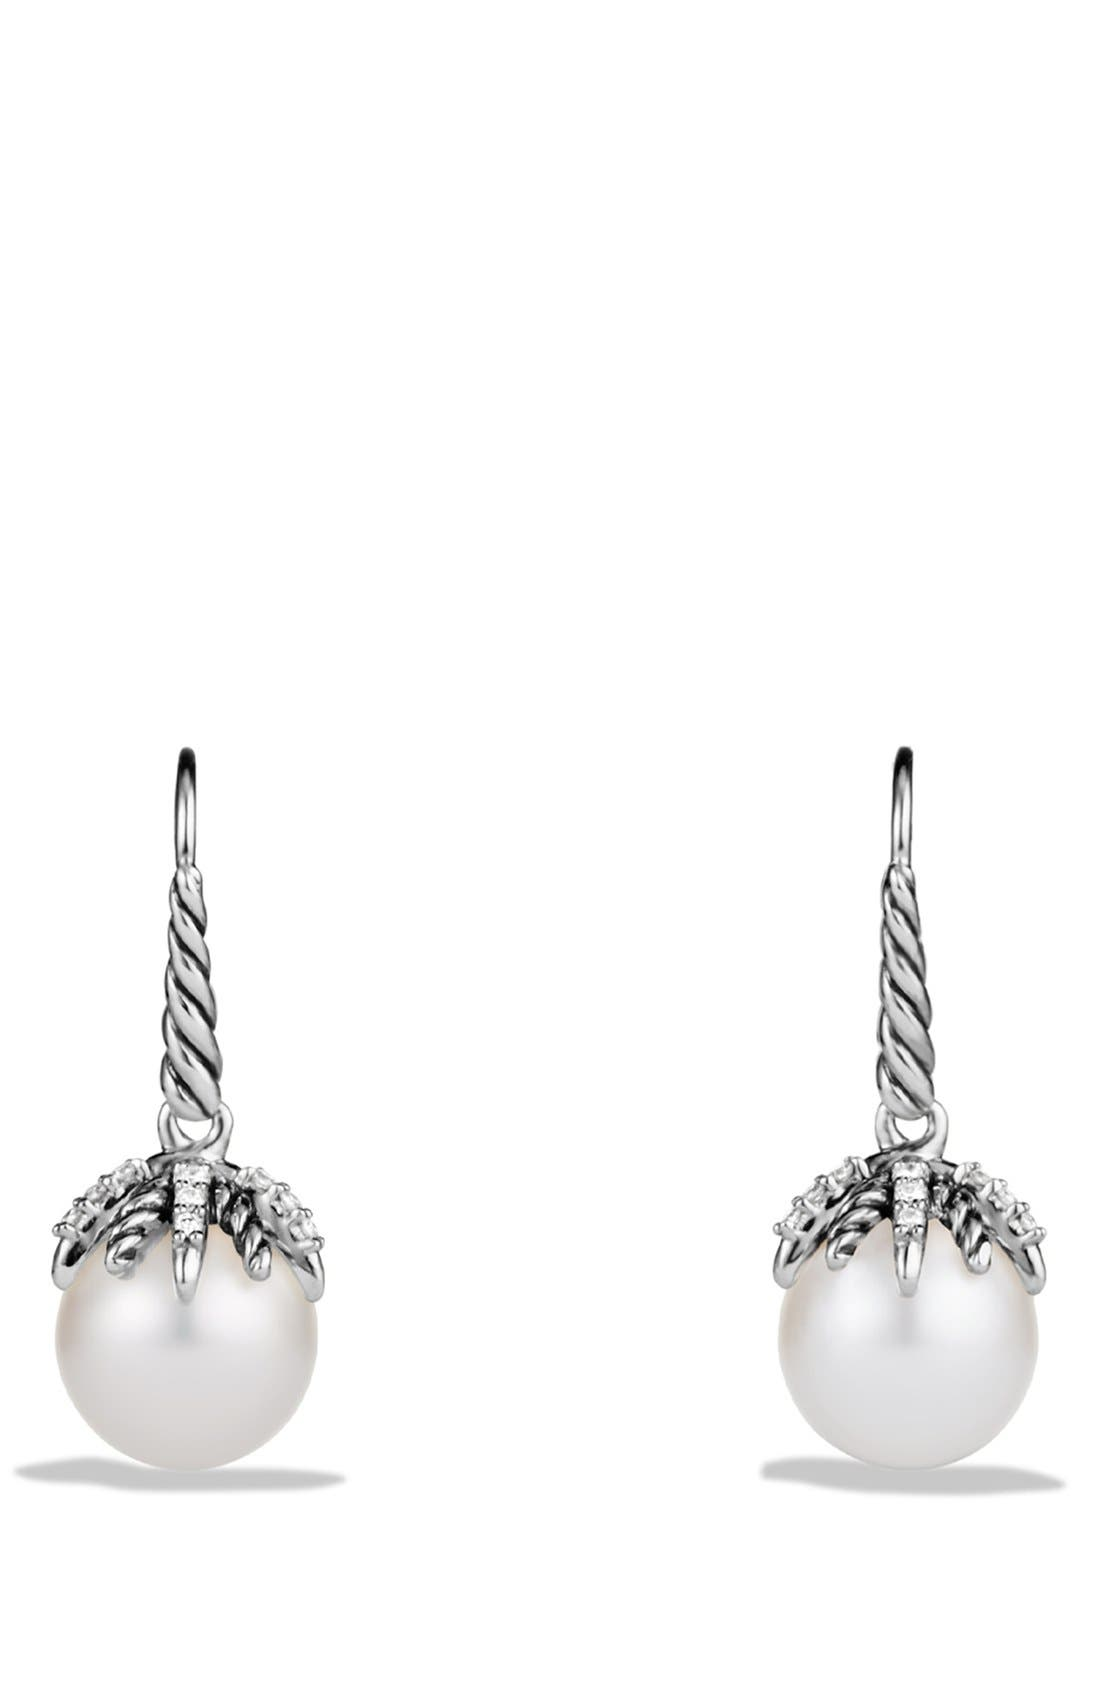 DAVID YURMAN Starburst Earrings with Pearls and Diamonds